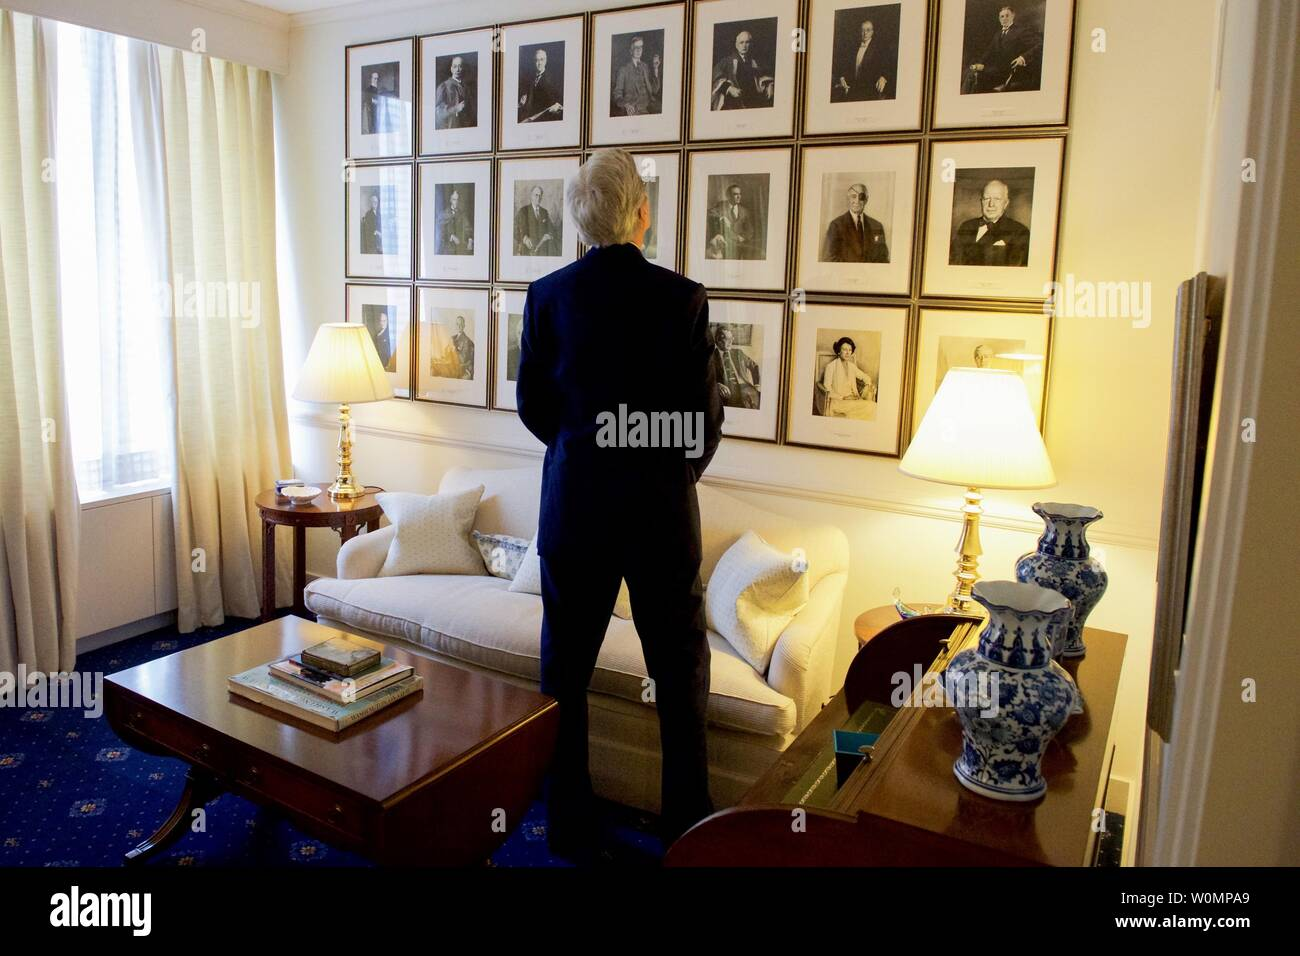 U.S. Secretary of State John Kerry looks at portraits of past U.S. Ambassadors to the Court of St. James while visiting the U.S. Embassy in London, on May 10, 2016, while in the British capital for a series of bilateral meetings, an appearance at Oxford University, and his attendance at an anti-corruption meeting hosted by British Prime Minister David Cameron. Photo by U.S. Department of State/UPI - Stock Image